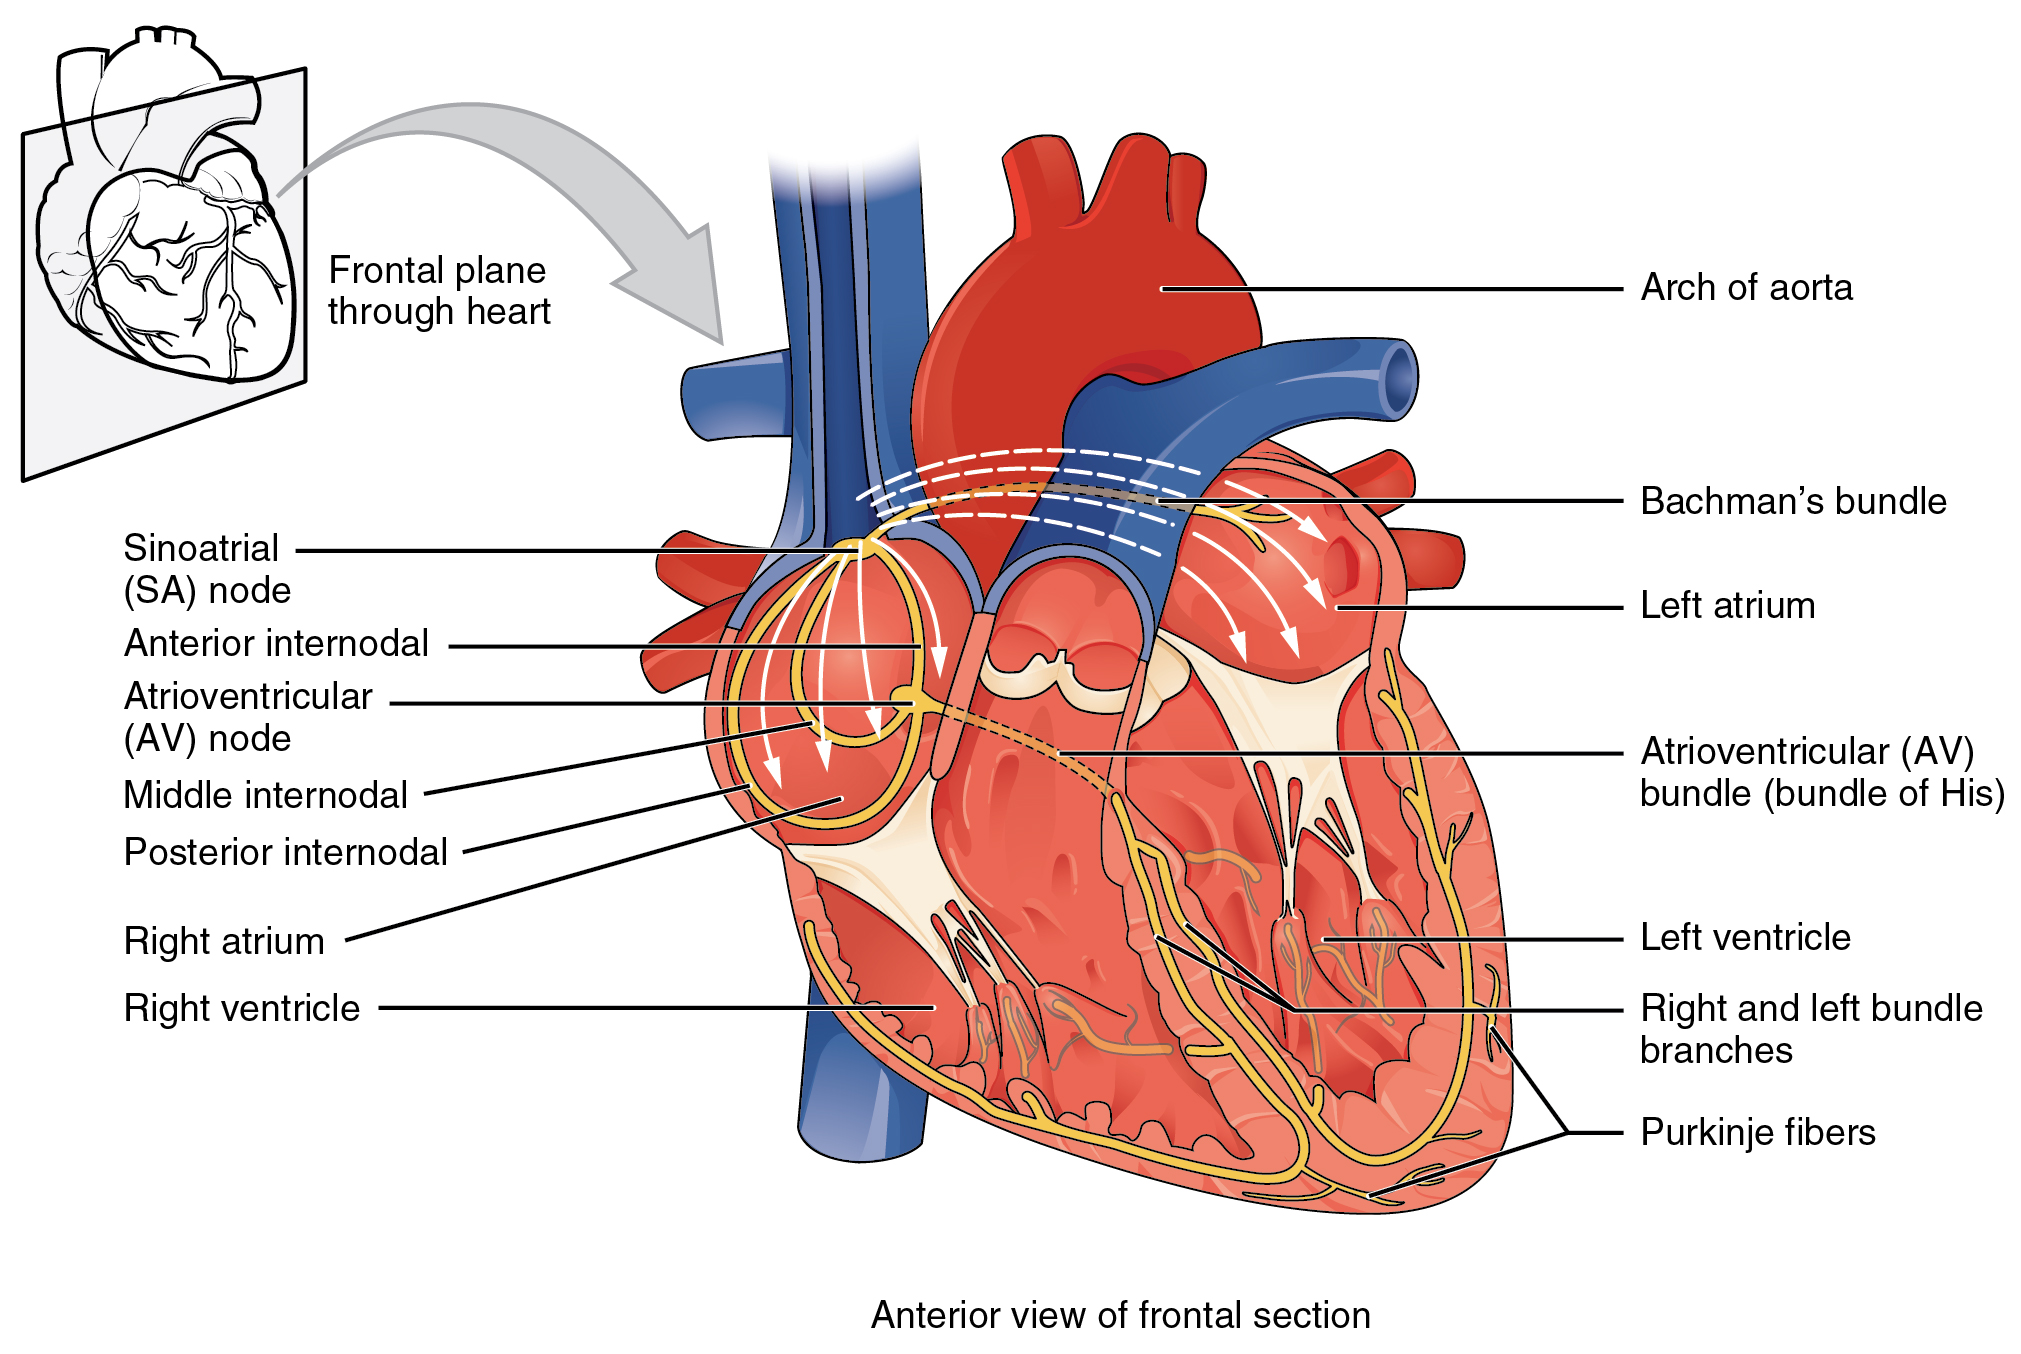 This image shows the anterior view of the frontal section of the heart with the major parts labeled.